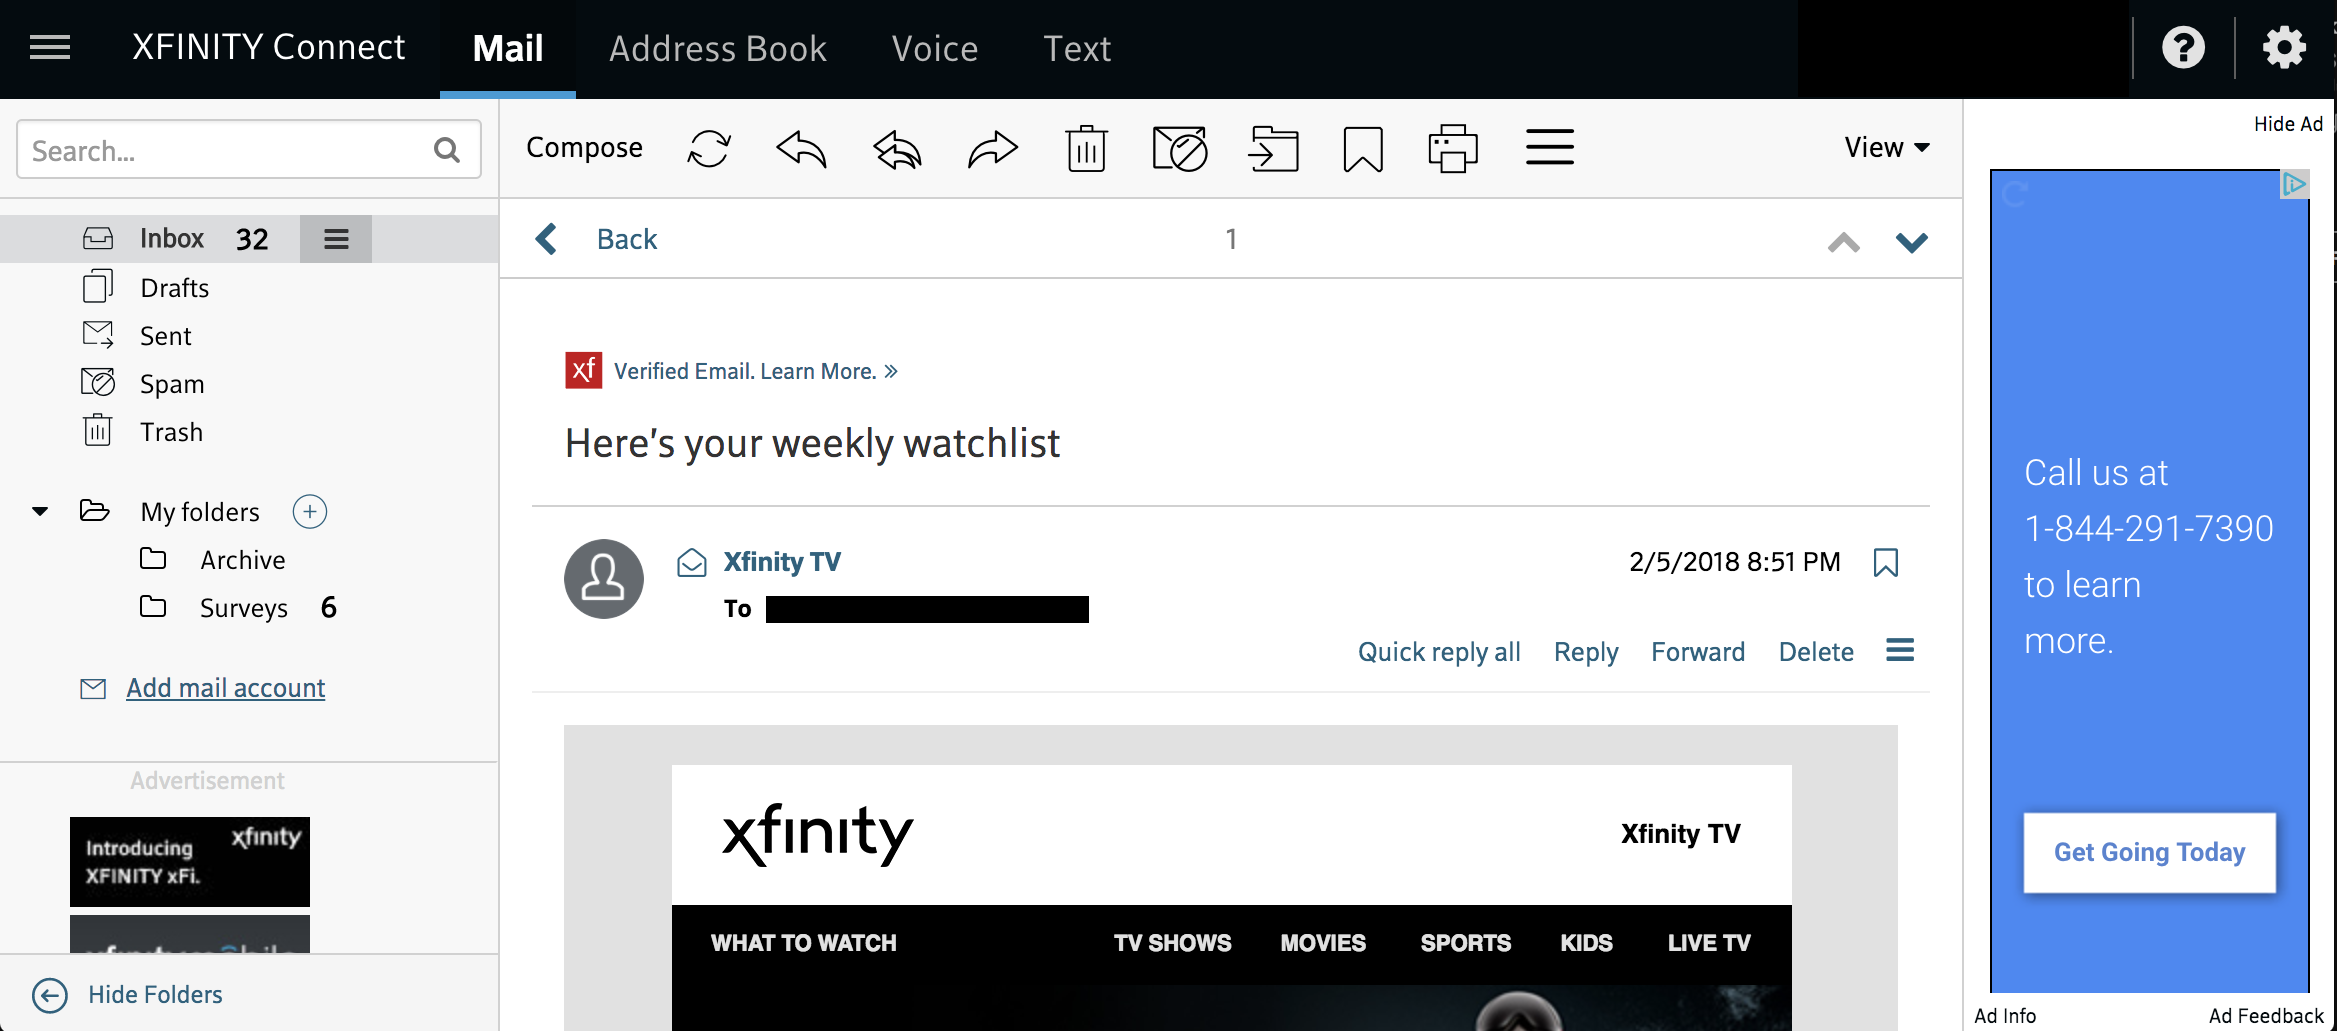 Can I Change Xfinity Email Themes? - Ask Dave Taylor